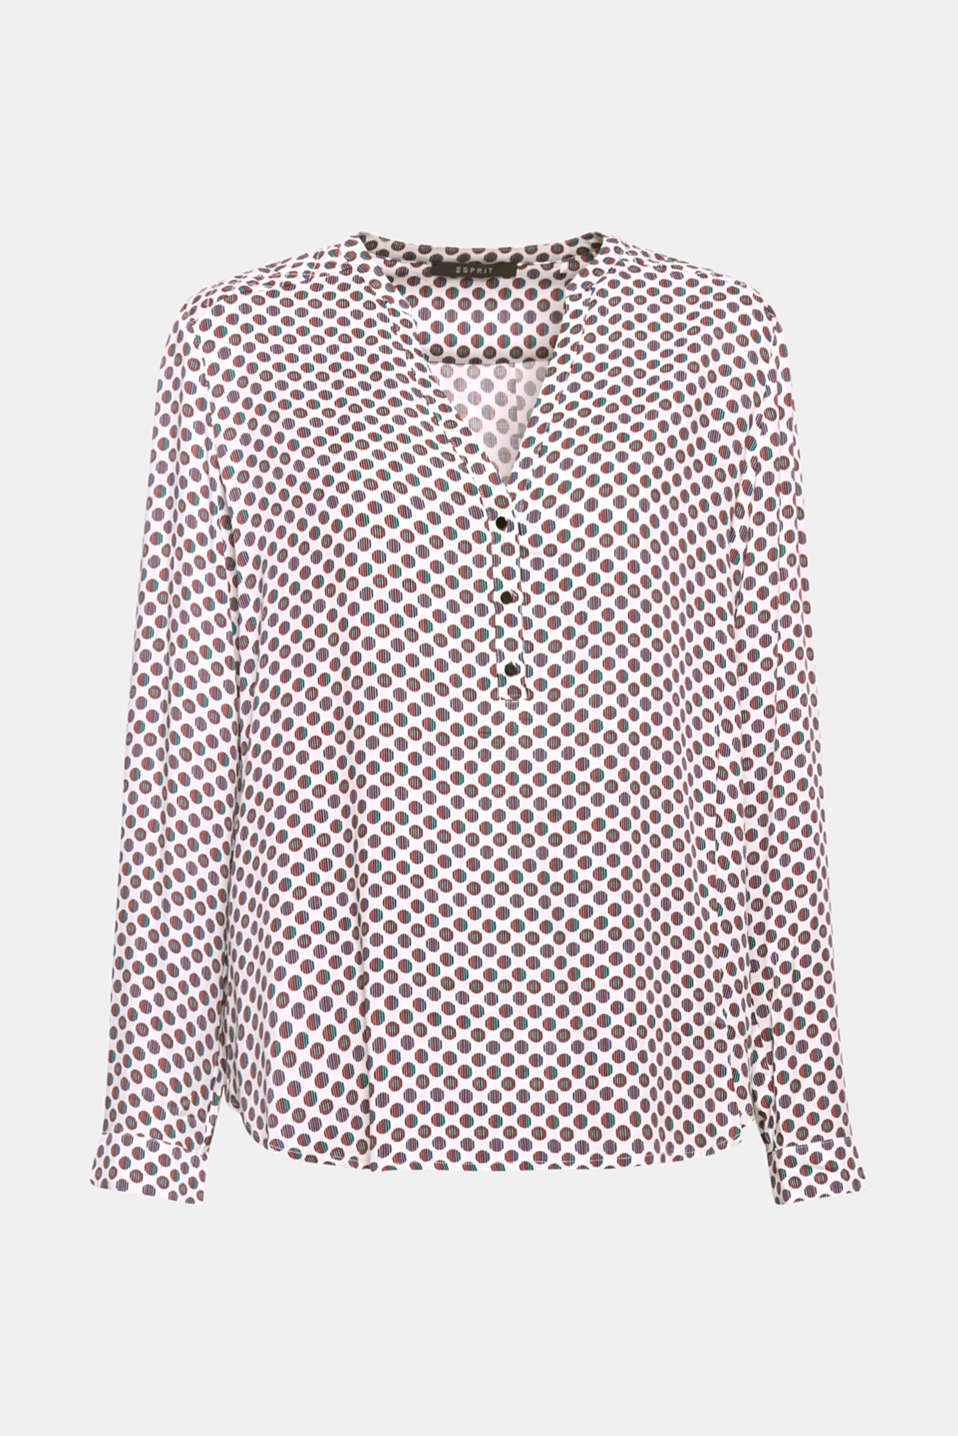 Update for the popular Henley blouse: The striking mini print and quilted upper back section provide fashionable input!